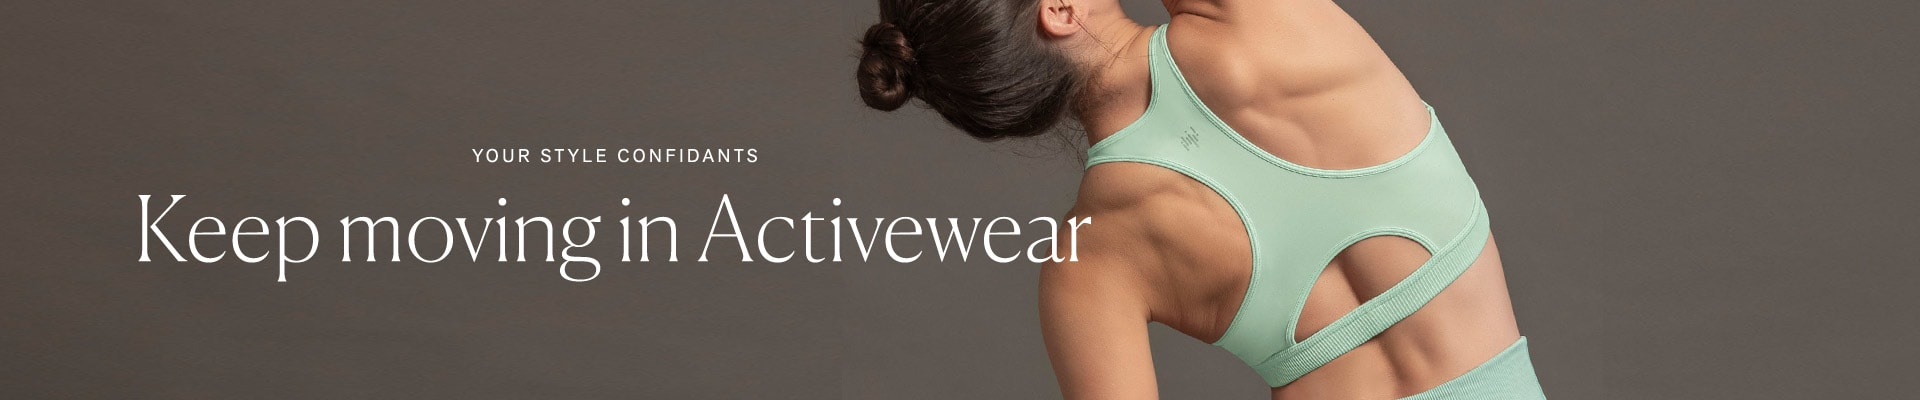 Keep moving in Activewear